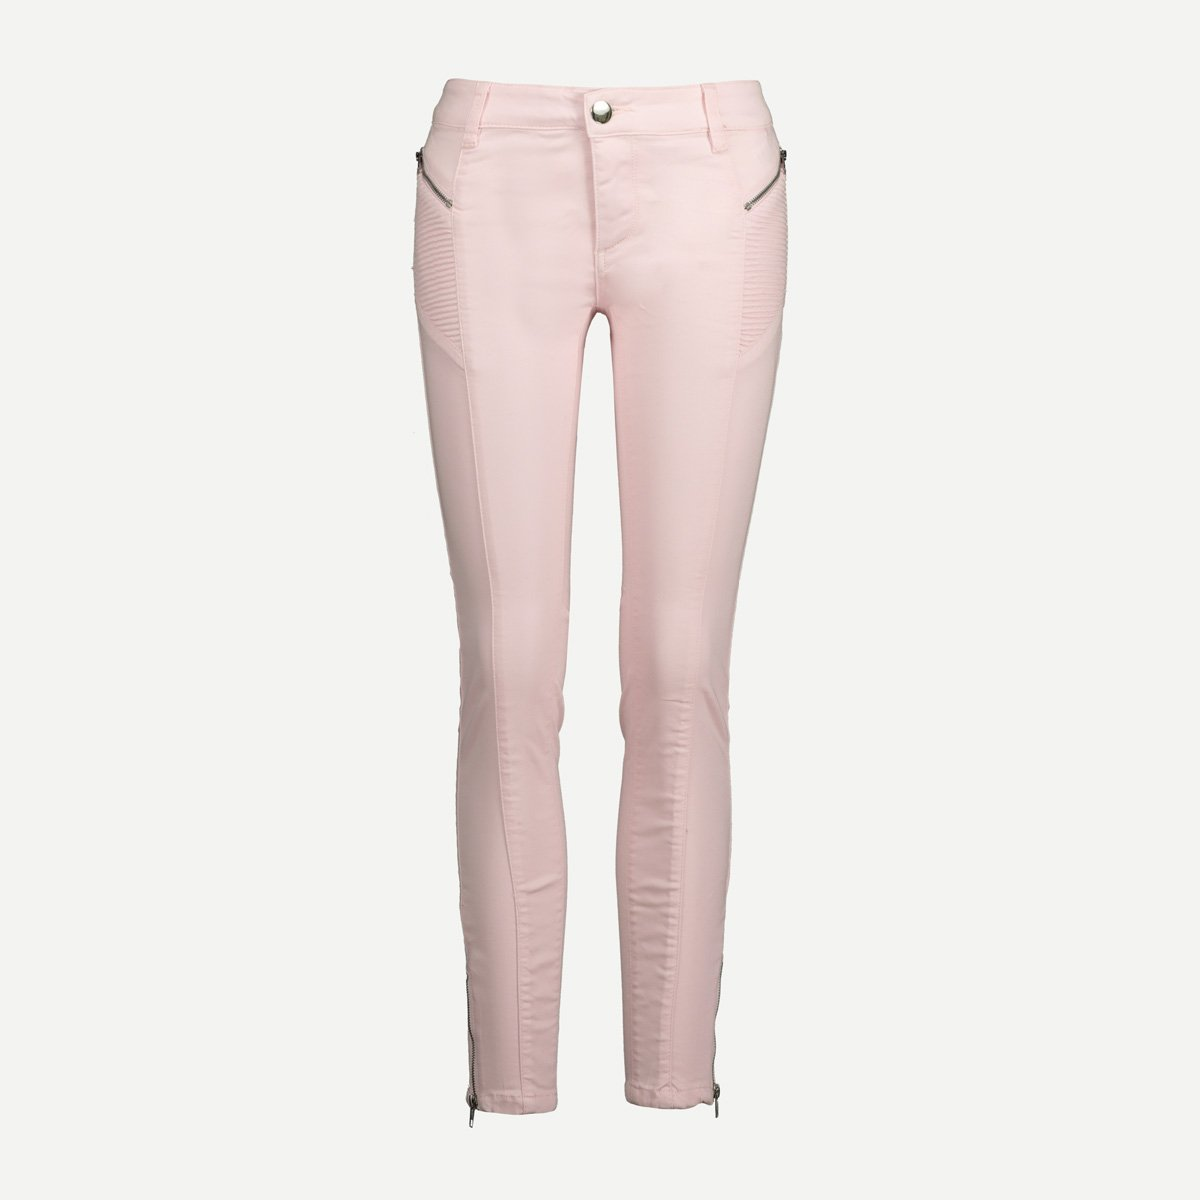 Women Trousers - puzzlebrands.com